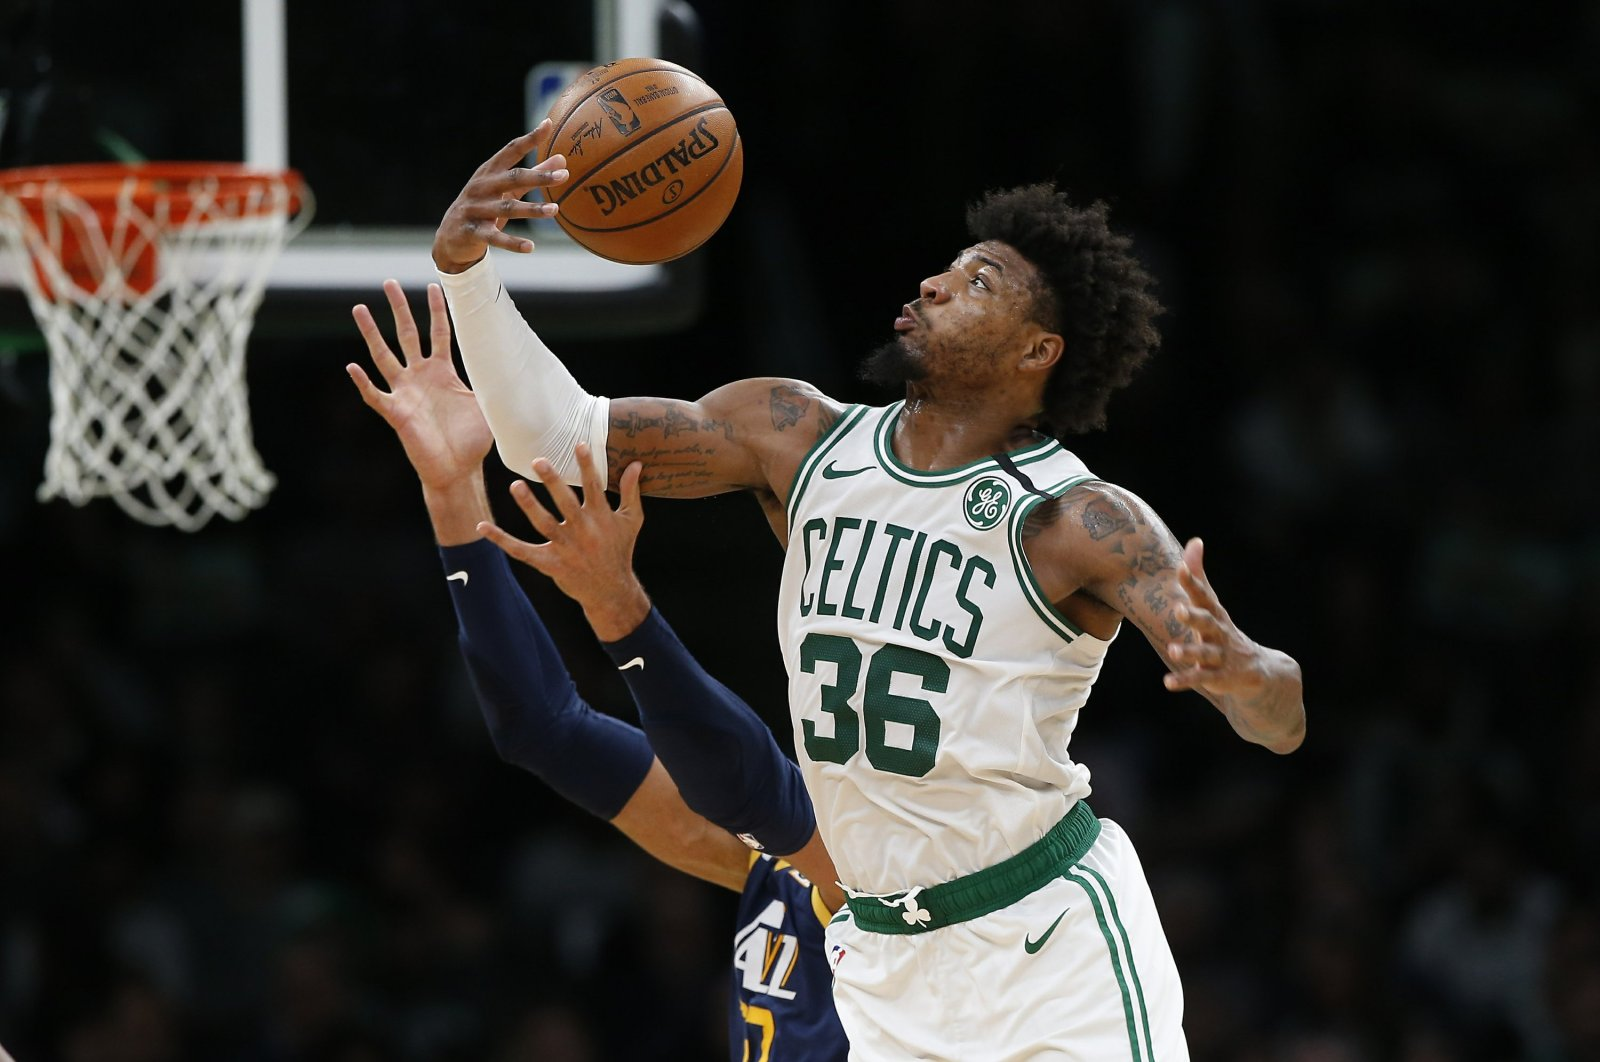 Boston Celtics' Marcus Smart (36) gathers in a rebound against the Utah Jazz during an NBA game, in Boston, March 6, 2020. (AP Photo)